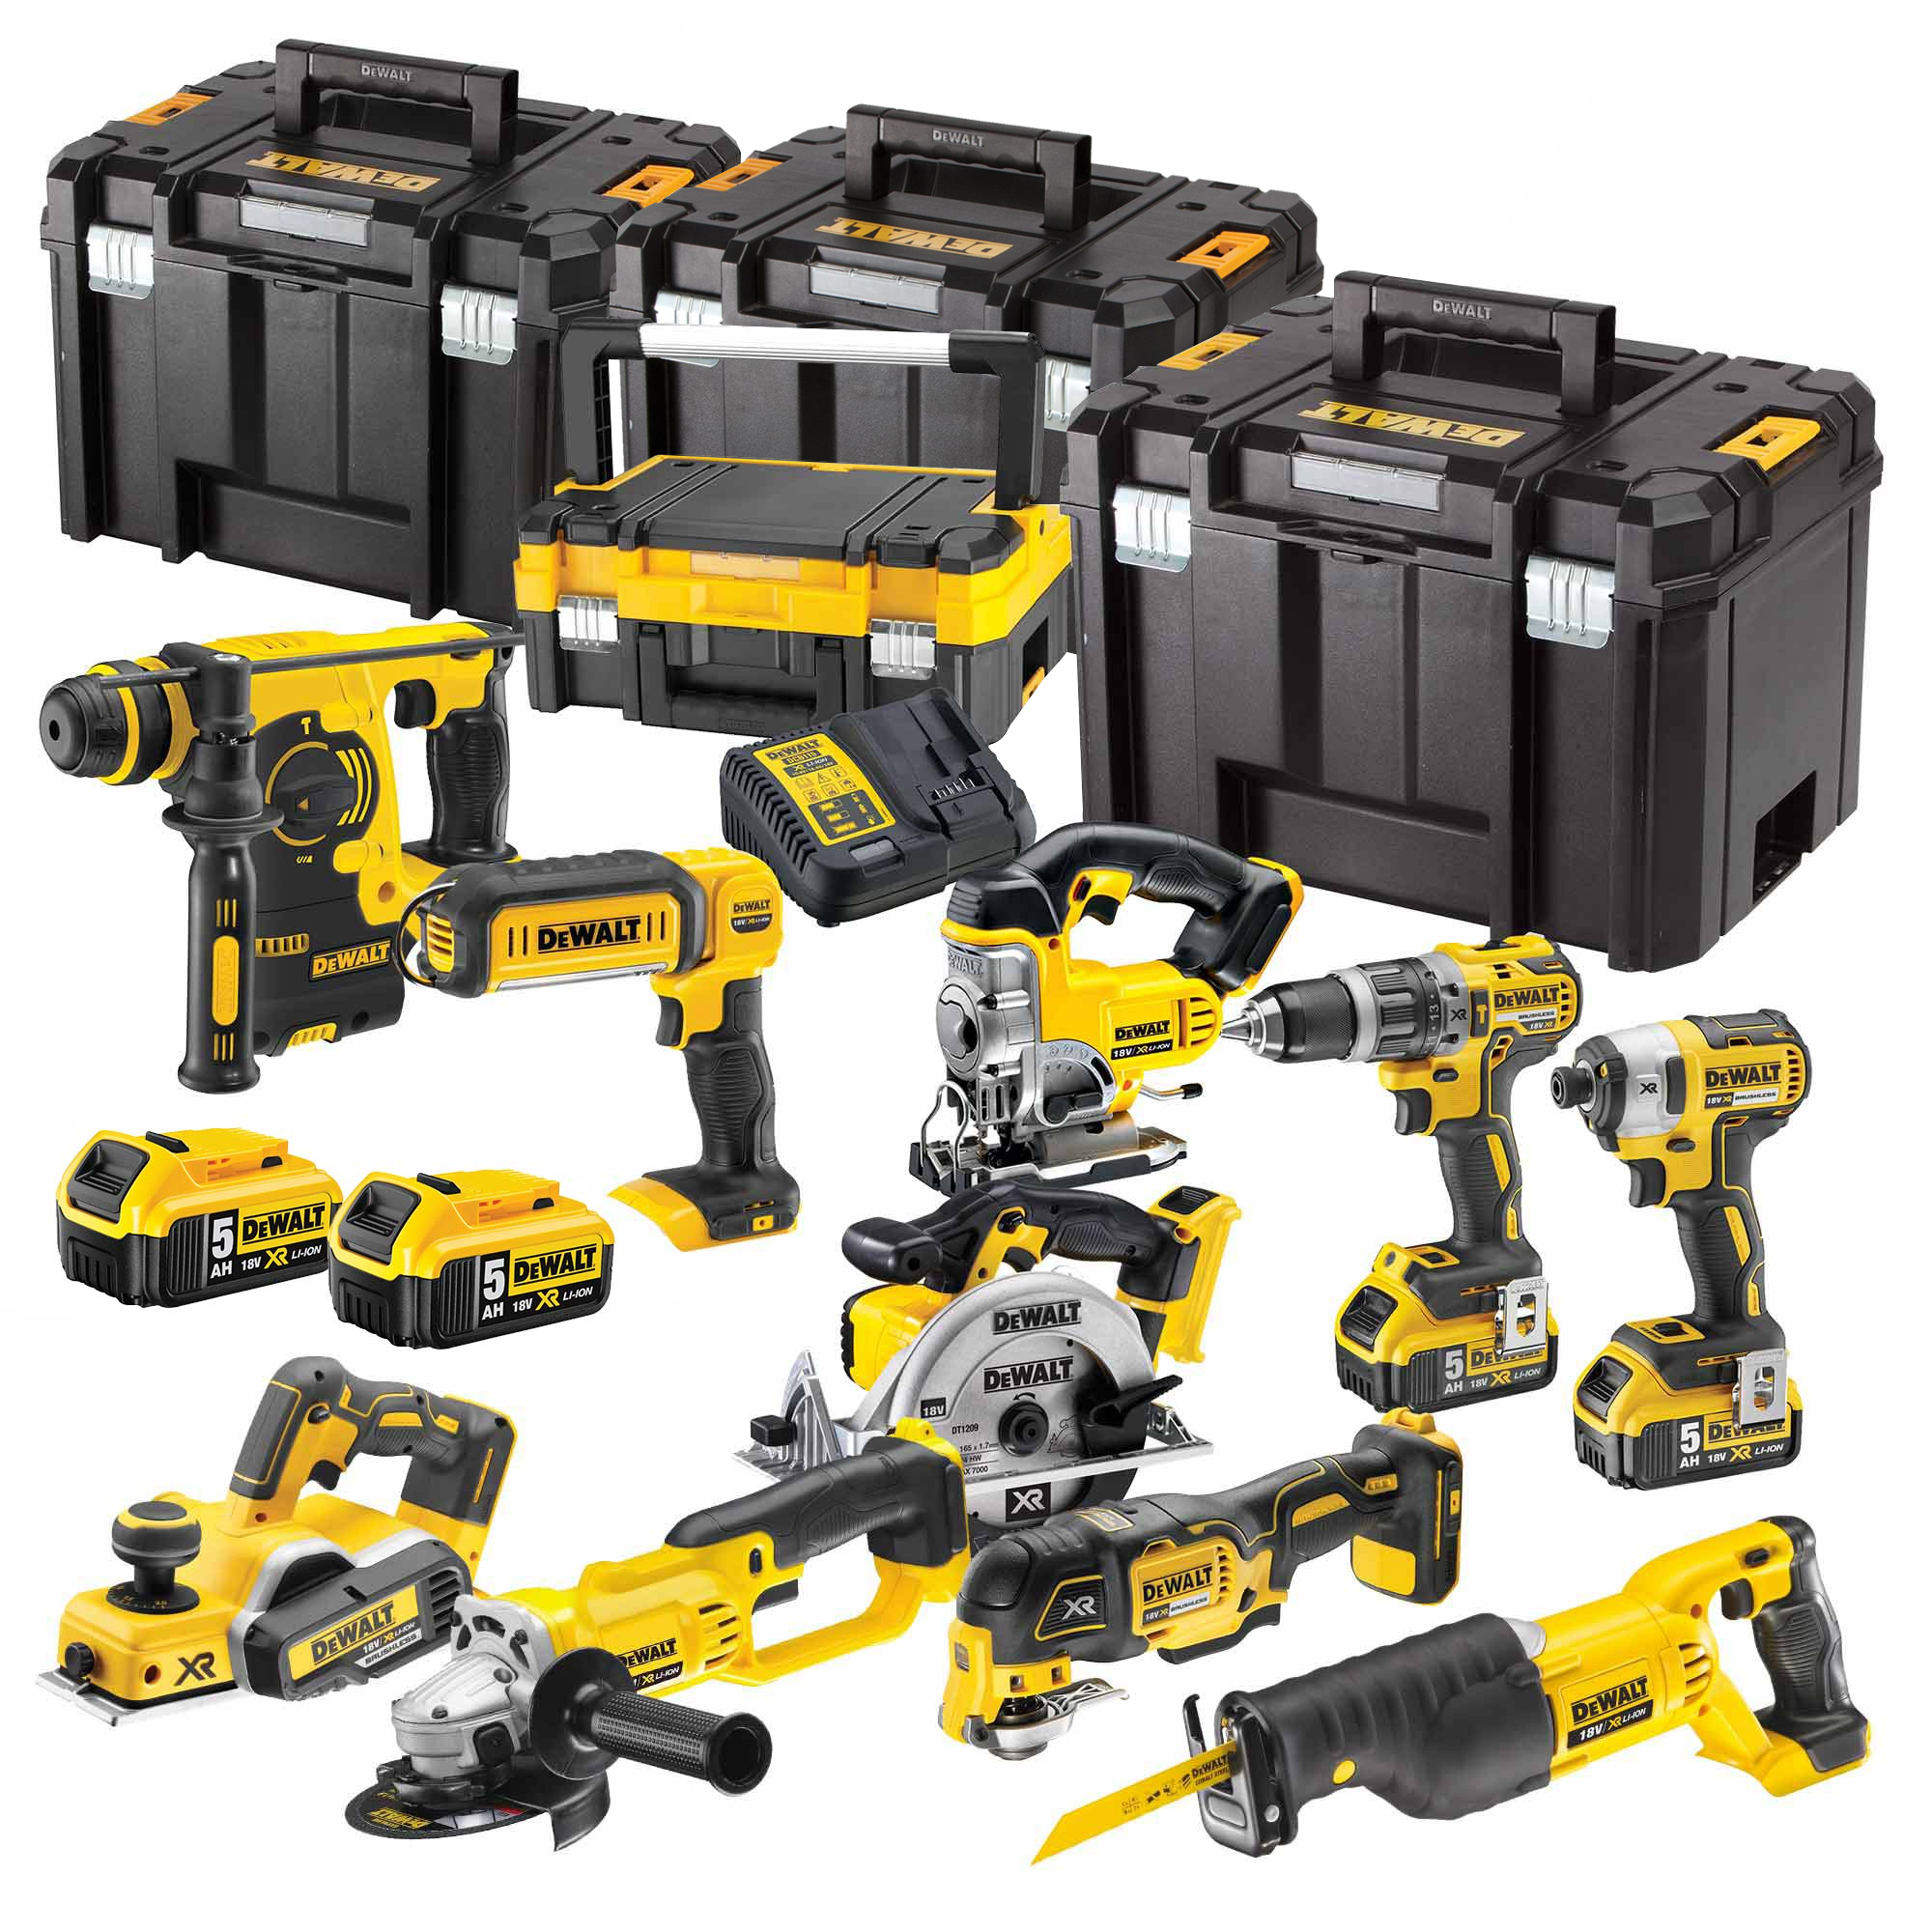 dewalt bxr10p dewalt 18v lithium ion 10 piece kit. Black Bedroom Furniture Sets. Home Design Ideas